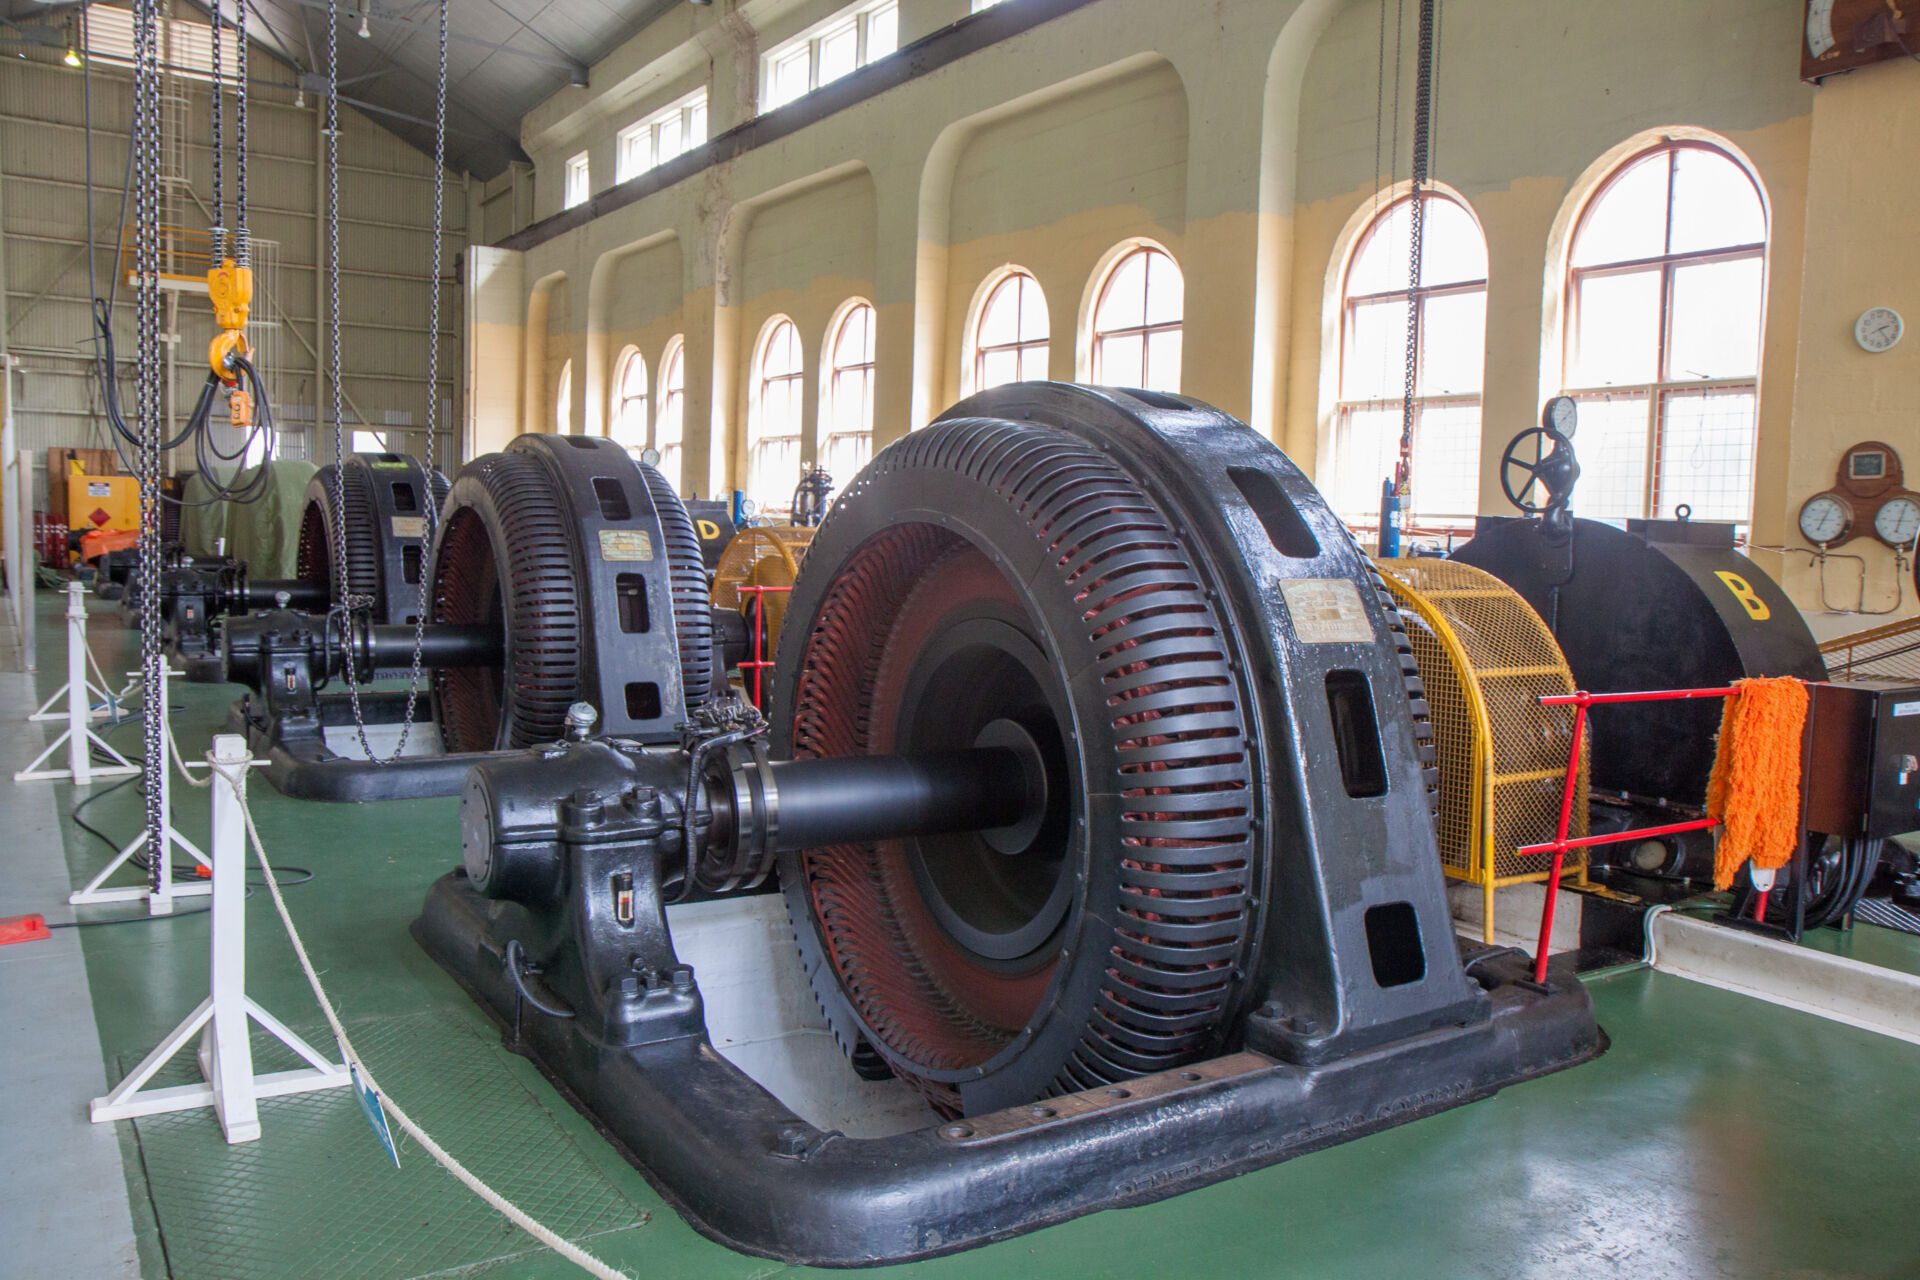 Inside the power station.